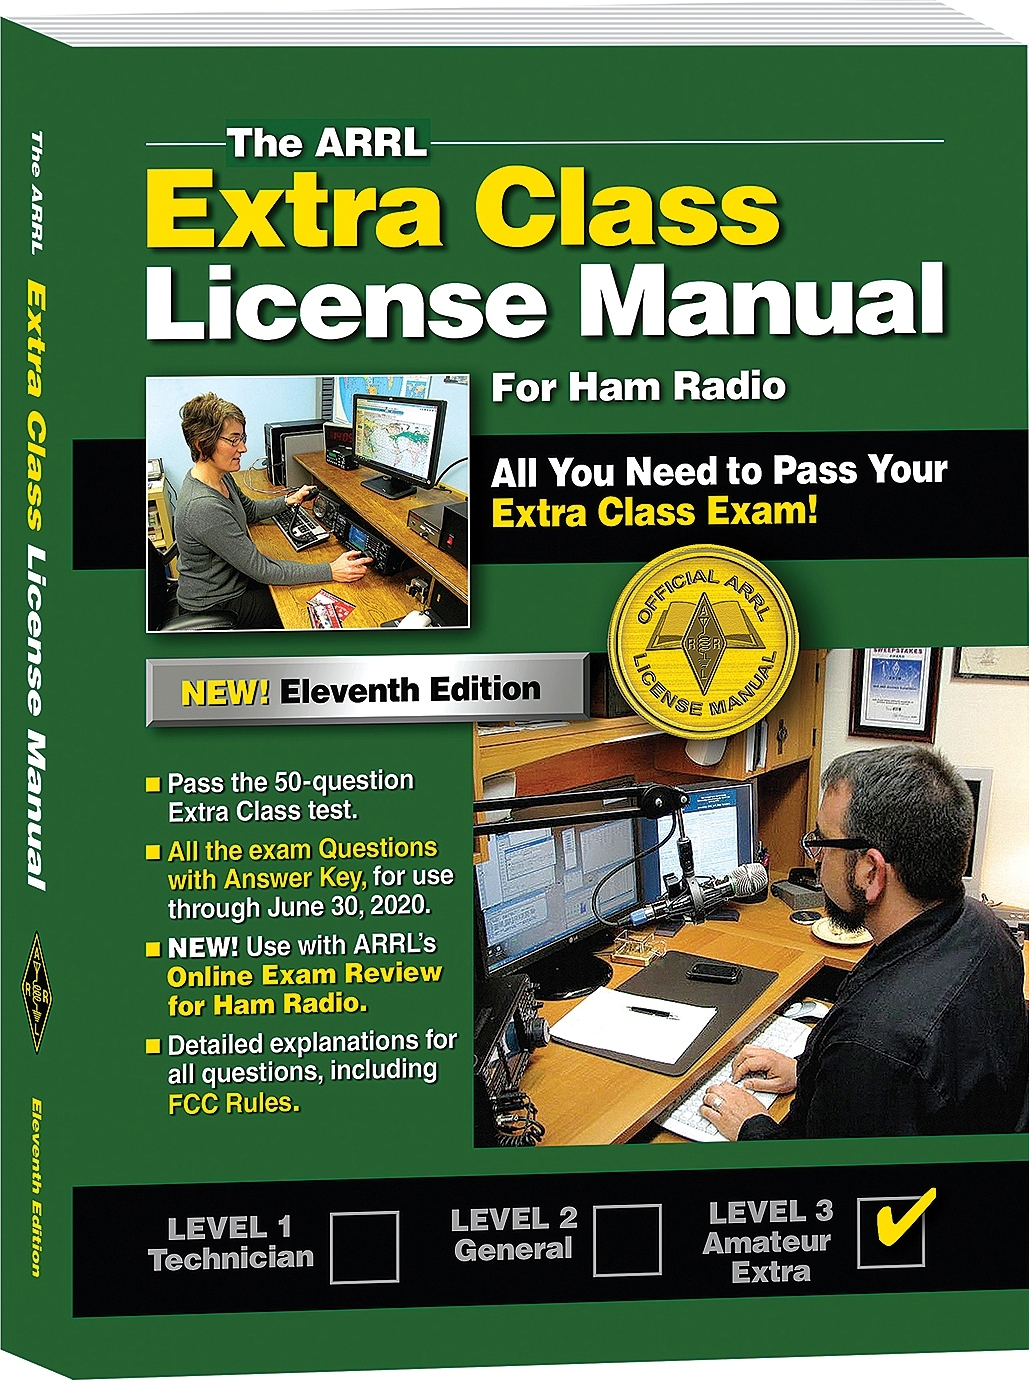 new arrl extra class license manual available as softcover spiral rh arrl org arrl technician license manual pdf arrl technician license manual pdf